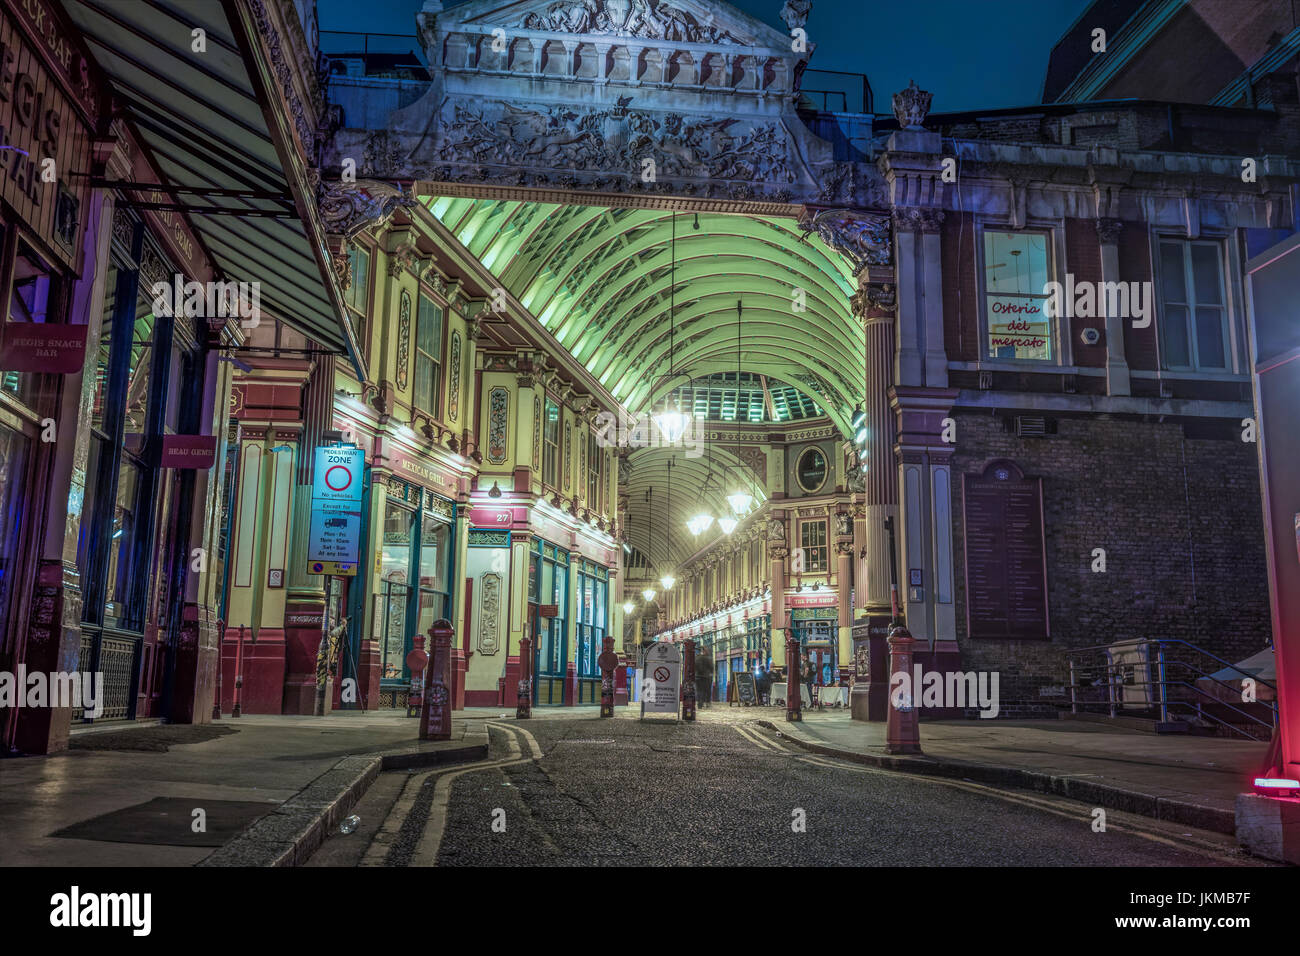 Leadenhall Street Market London at Night - Stock Image